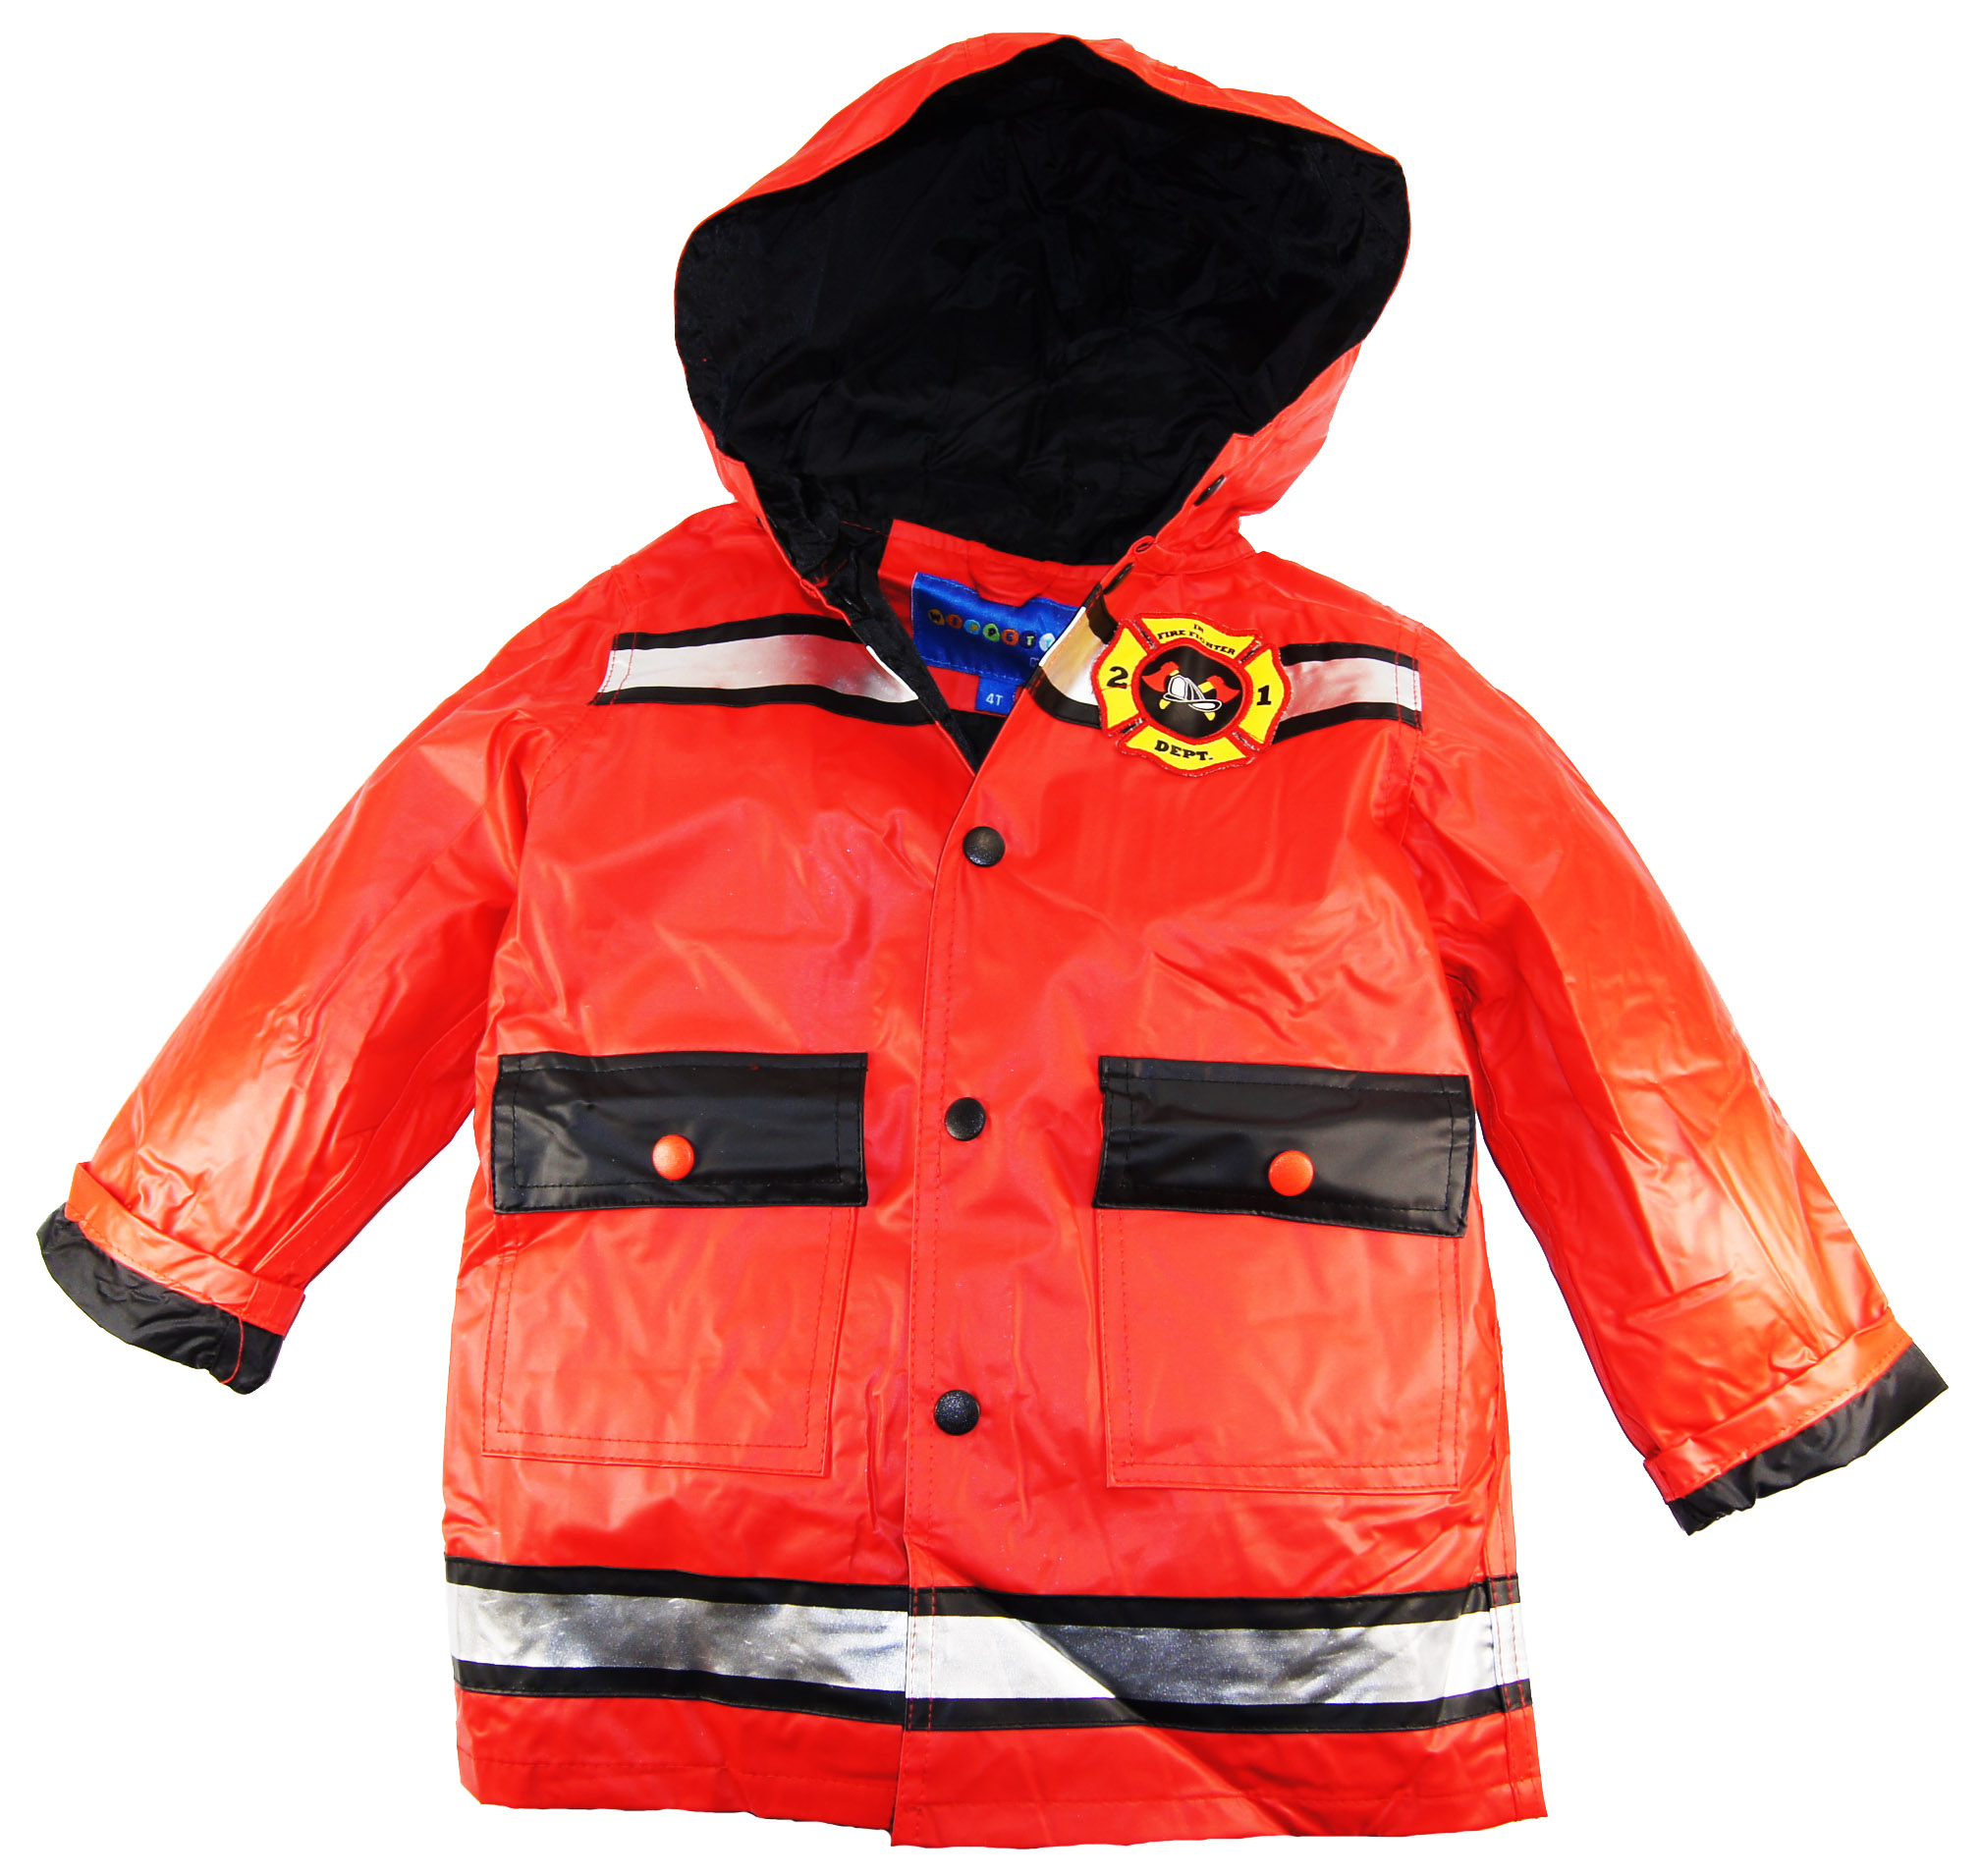 Wippette Boys Hooded Firefighter Raincoat Jacket (sizes 2T-7) at Sears.com